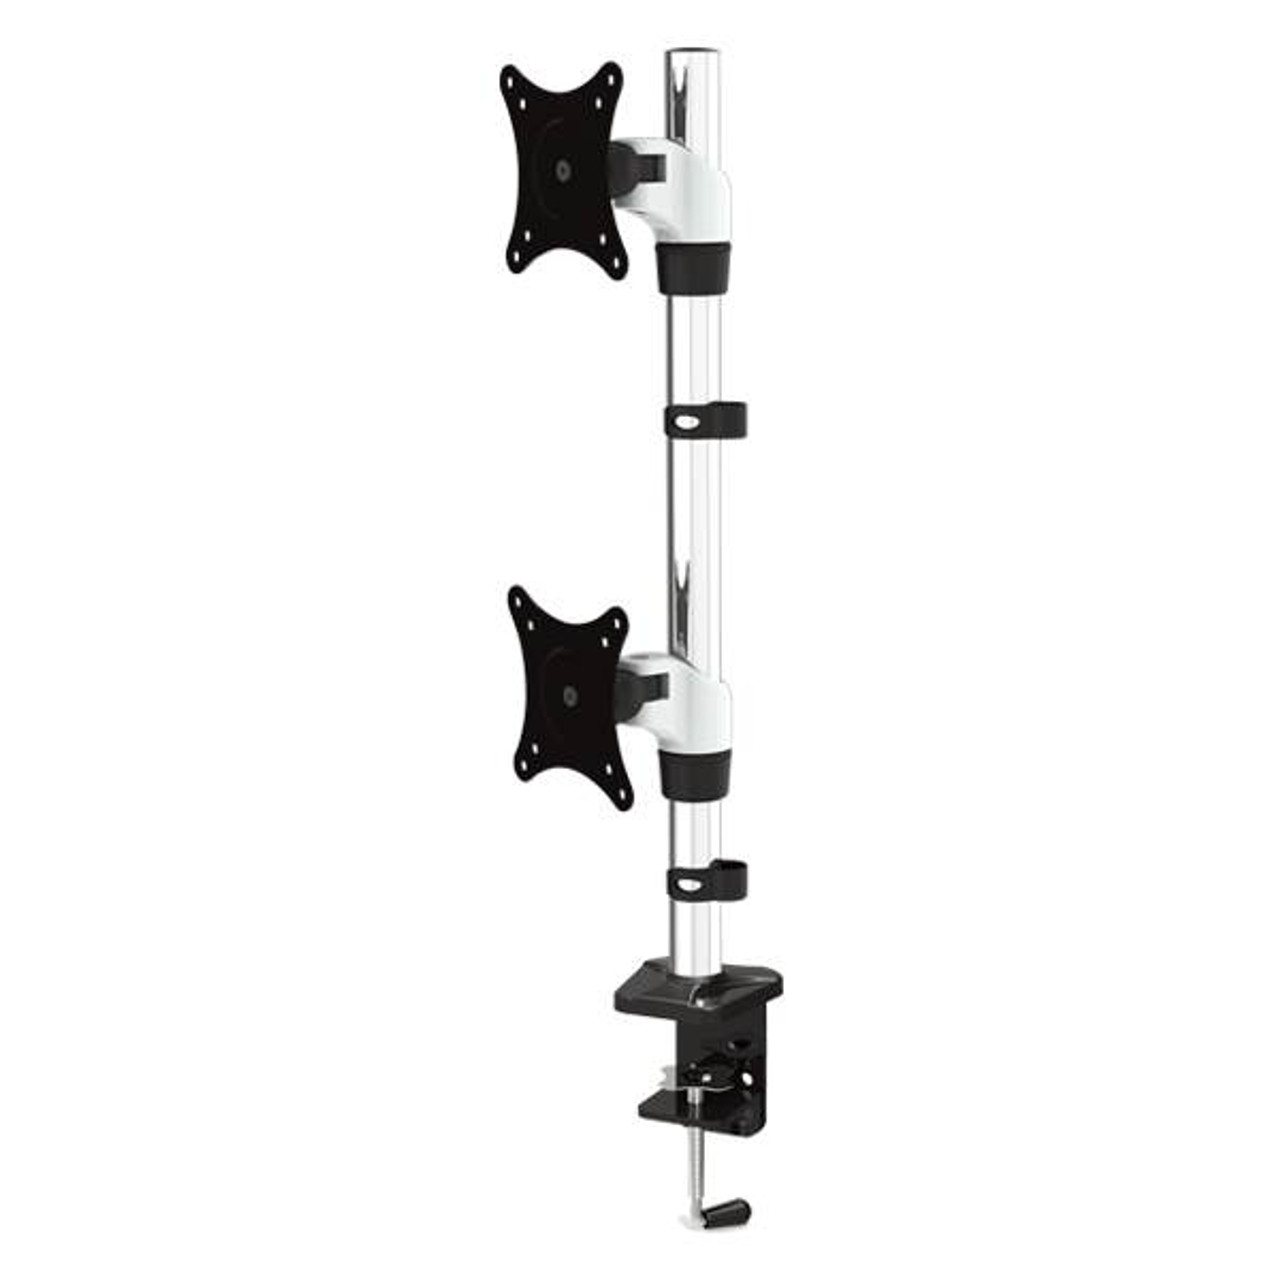 Image for Vision Mounts Adjustable Dual Monitor Vertical Desk Mount 15in-27in CX Computer Superstore